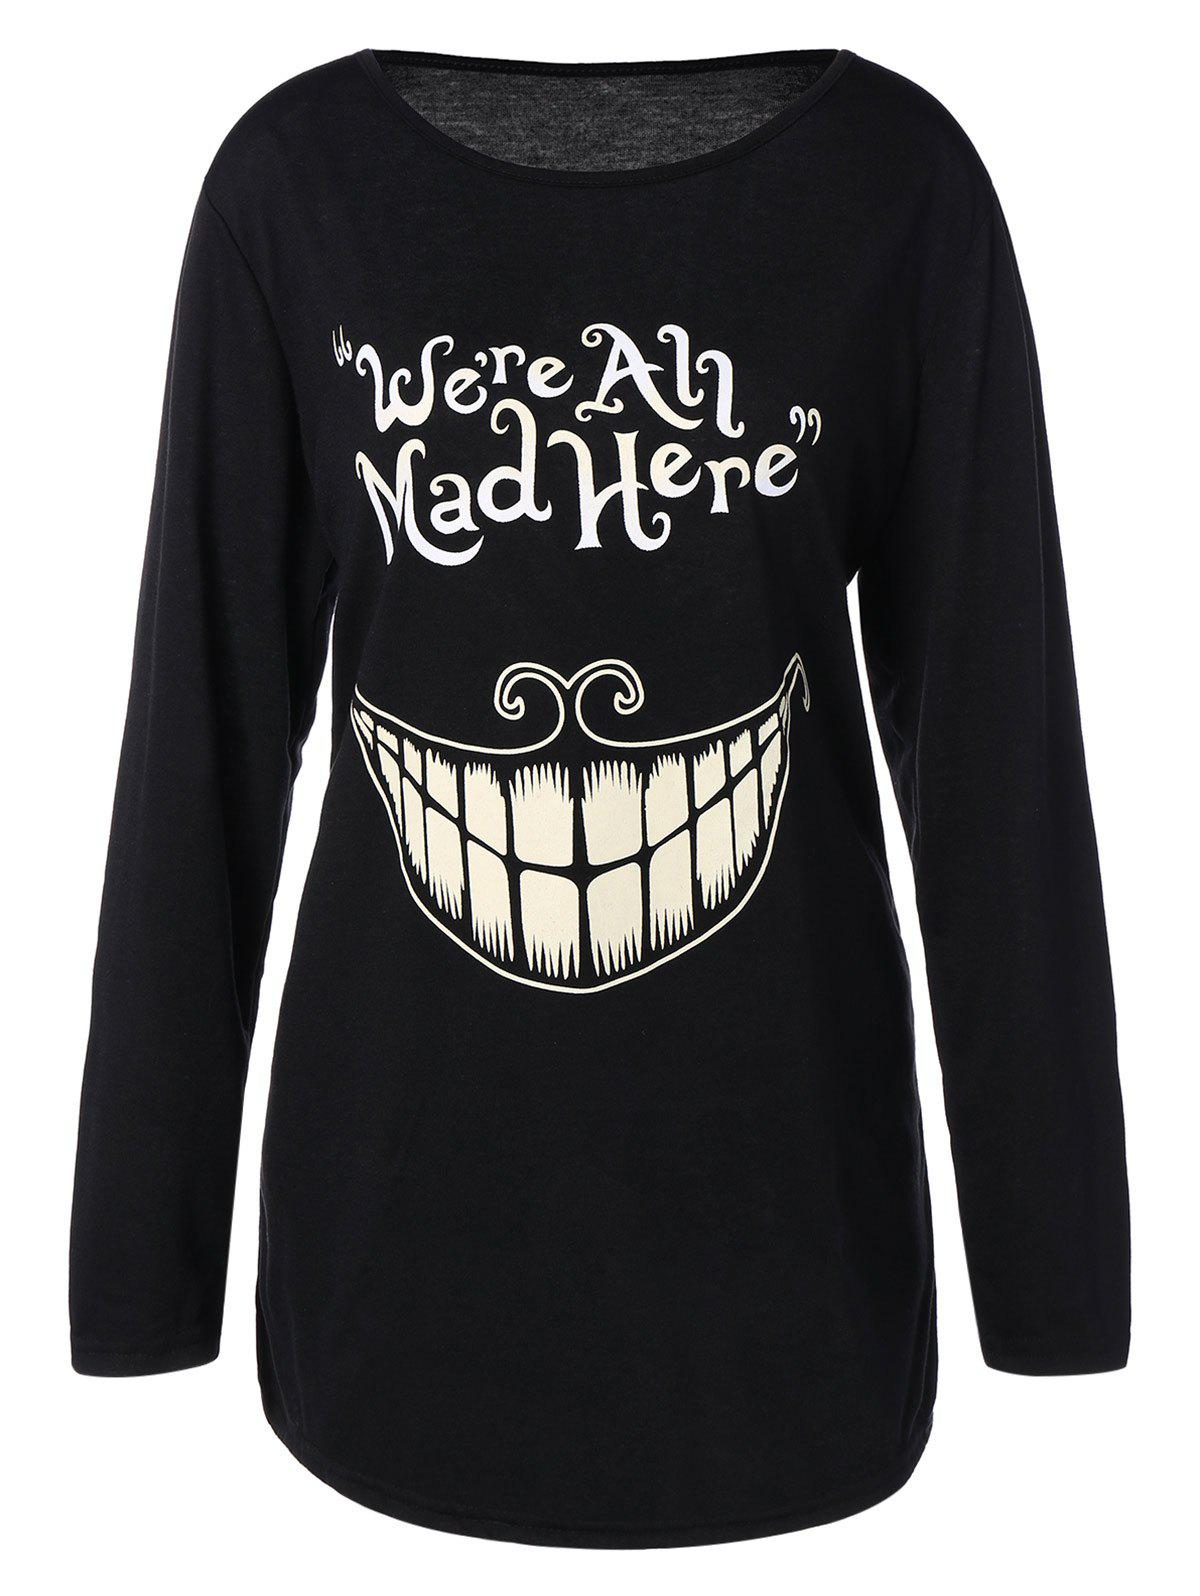 Plus Size Teeth and Letter Print T-shirtWOMEN<br><br>Size: 4XL; Color: BLACK; Material: Polyester,Spandex; Shirt Length: Long; Sleeve Length: Full; Collar: Jewel Neck; Style: Casual; Season: Fall,Spring; Pattern Type: Letter; Weight: 0.2510kg; Package Contents: 1 x T-Shirt;